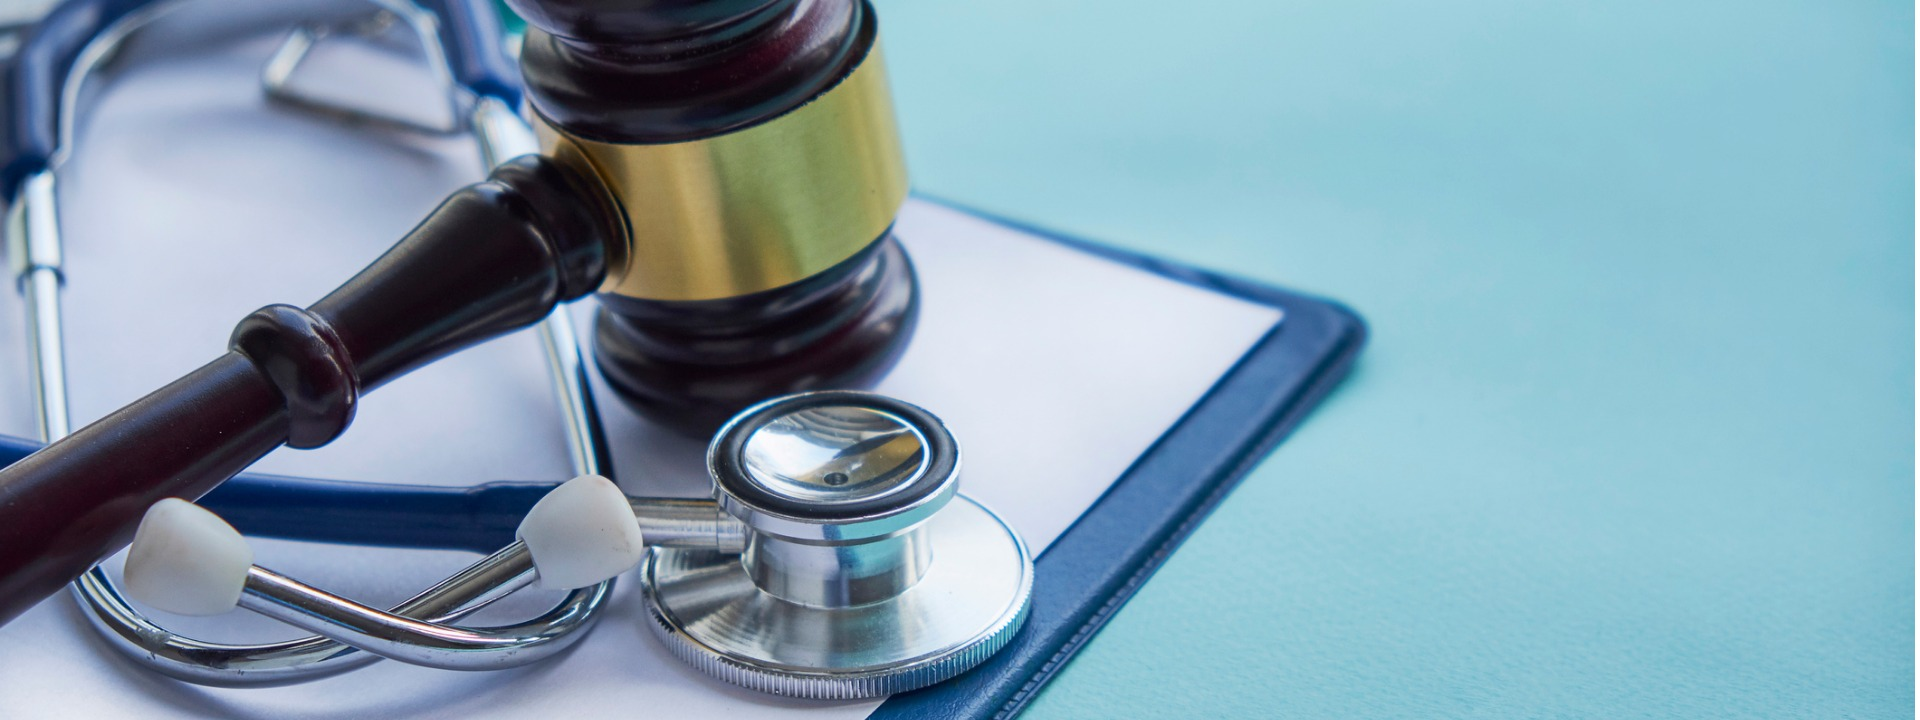 Medical Debt in Tennessee: Causes, Effects, and State-Based Solutions